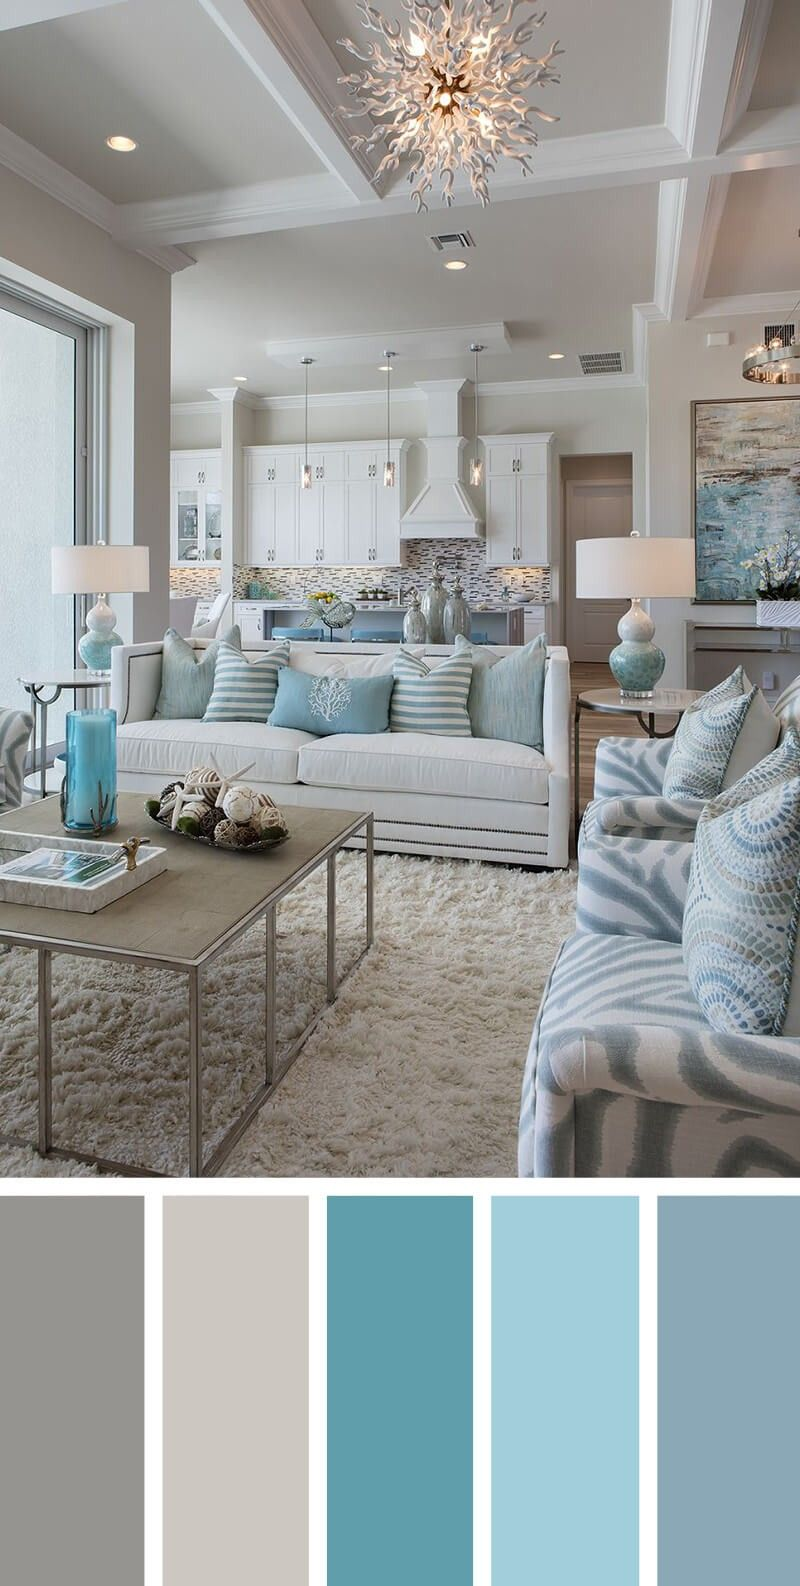 7 Living Room Color Scheme Ideas That Will Brighten Your Mood 6 7